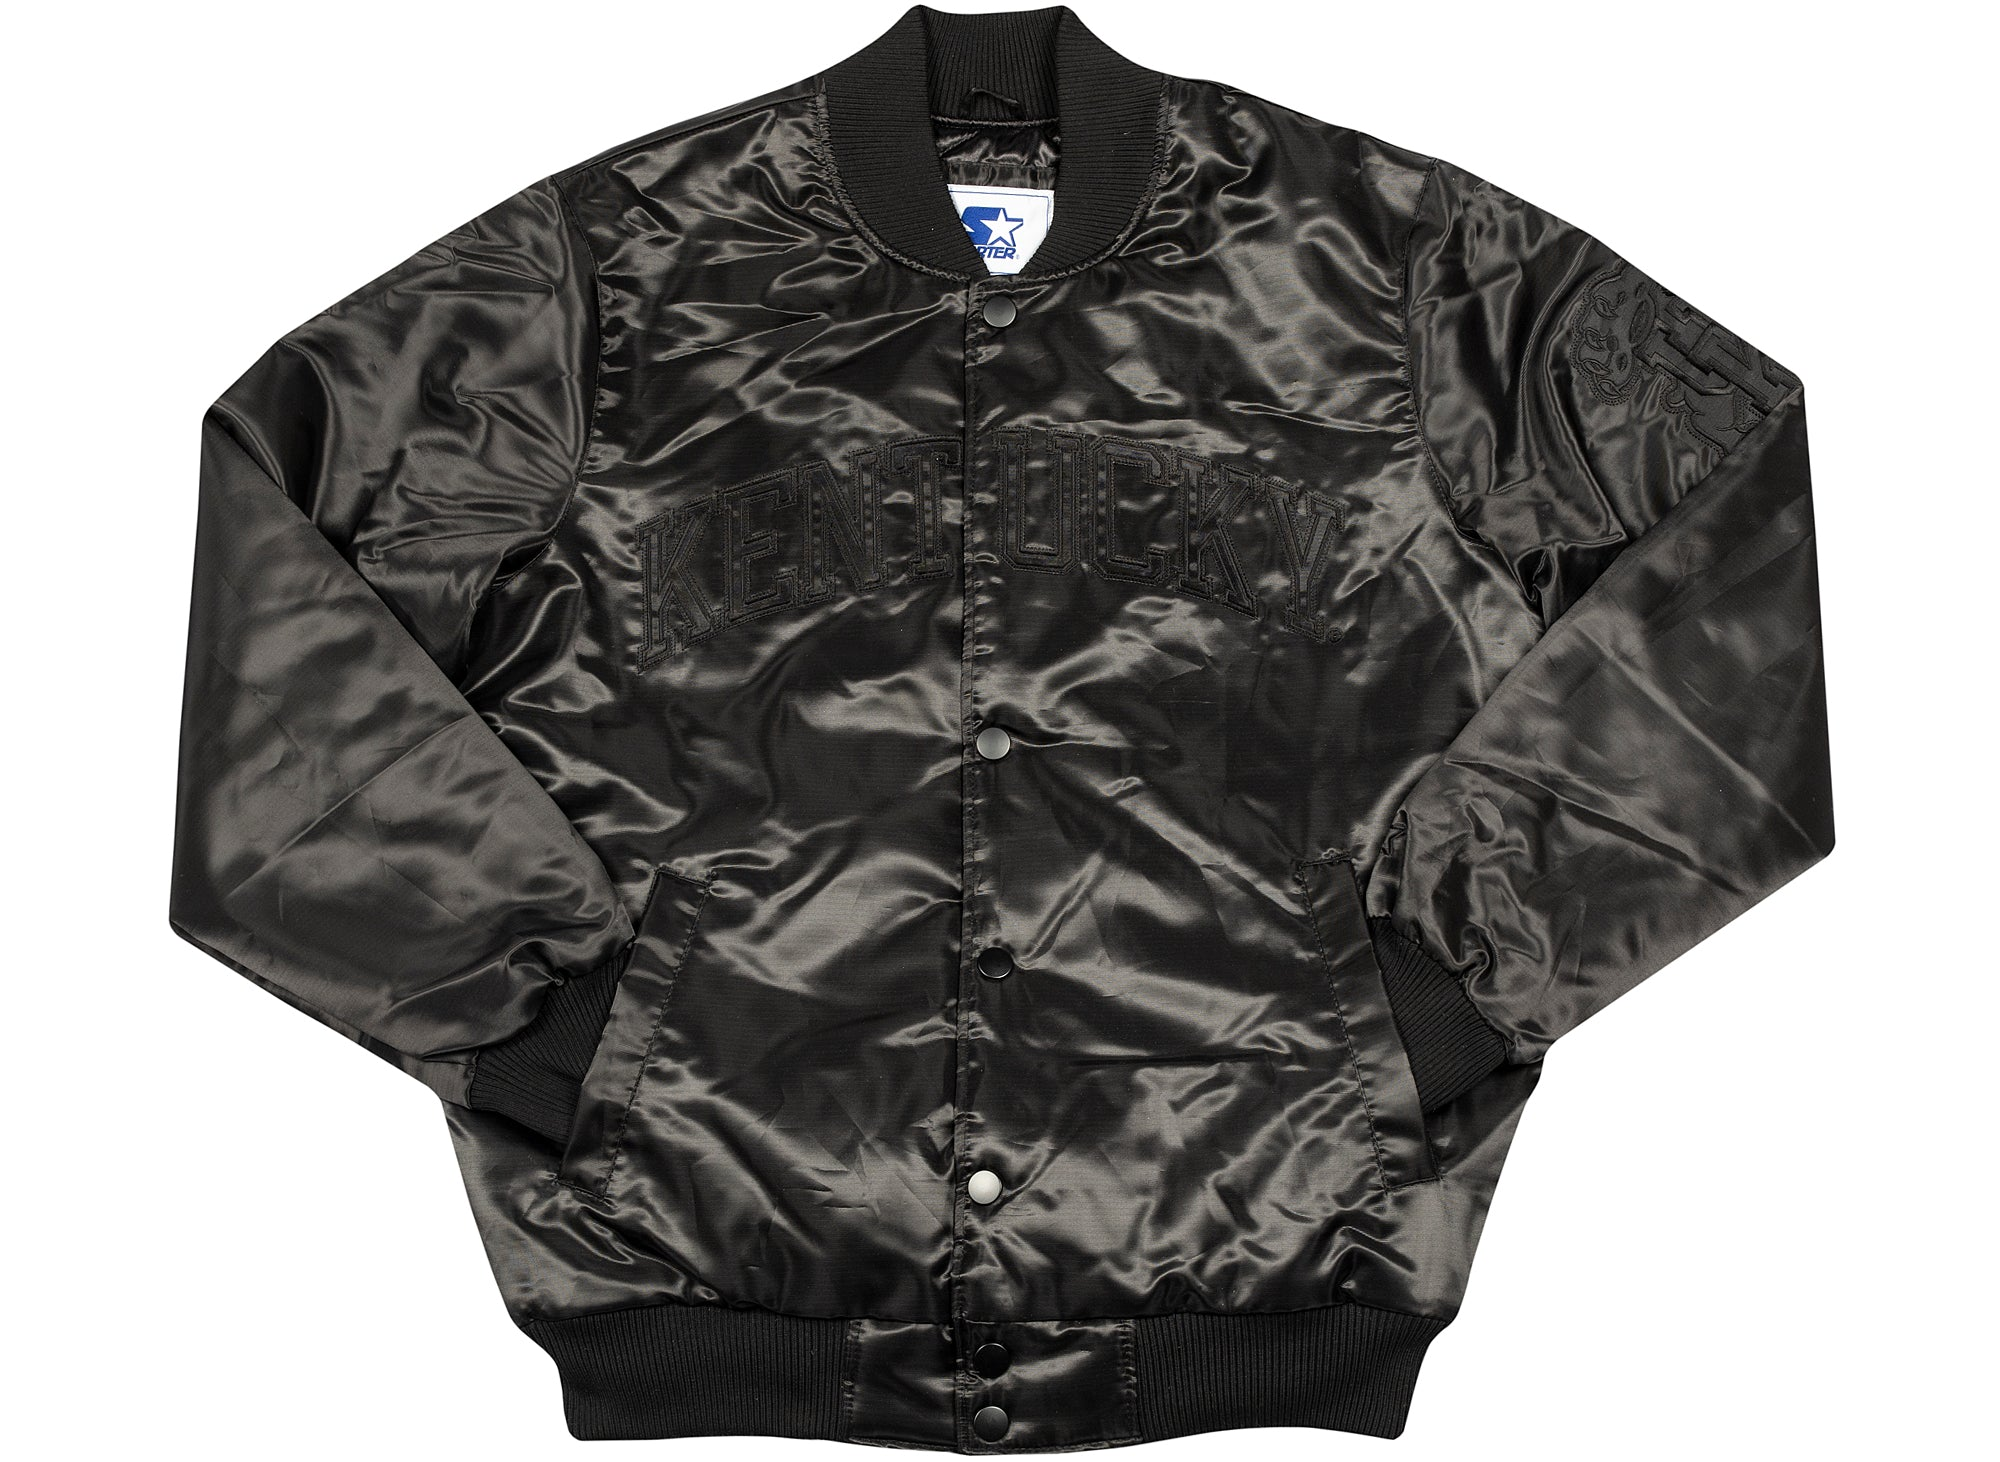 Starter x Oneness University of Kentucky Jacket - Limited Edition Triple Black Exclusive xld